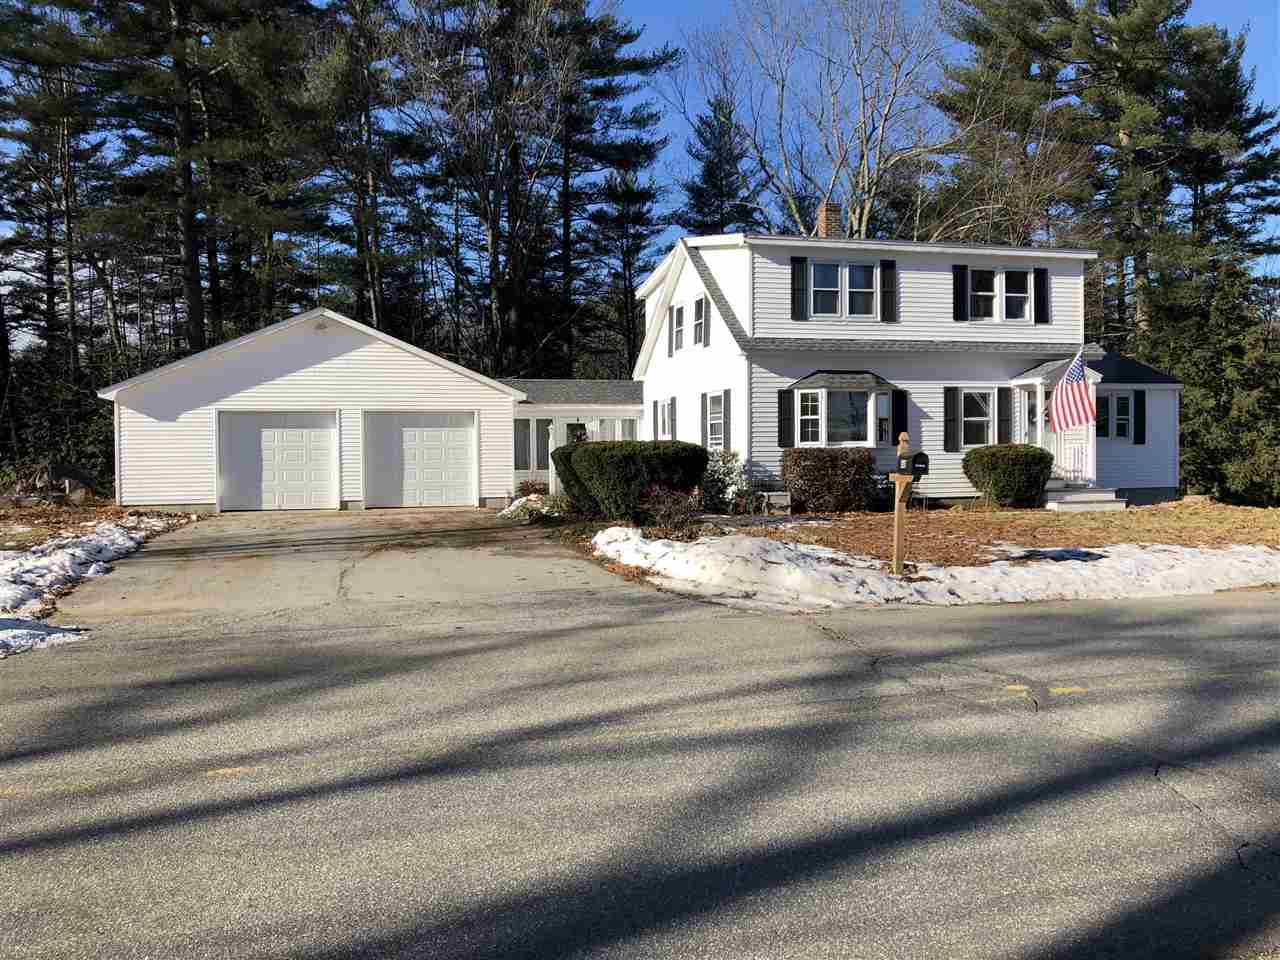 Photo of 60 Penacook Street Concord NH 03303